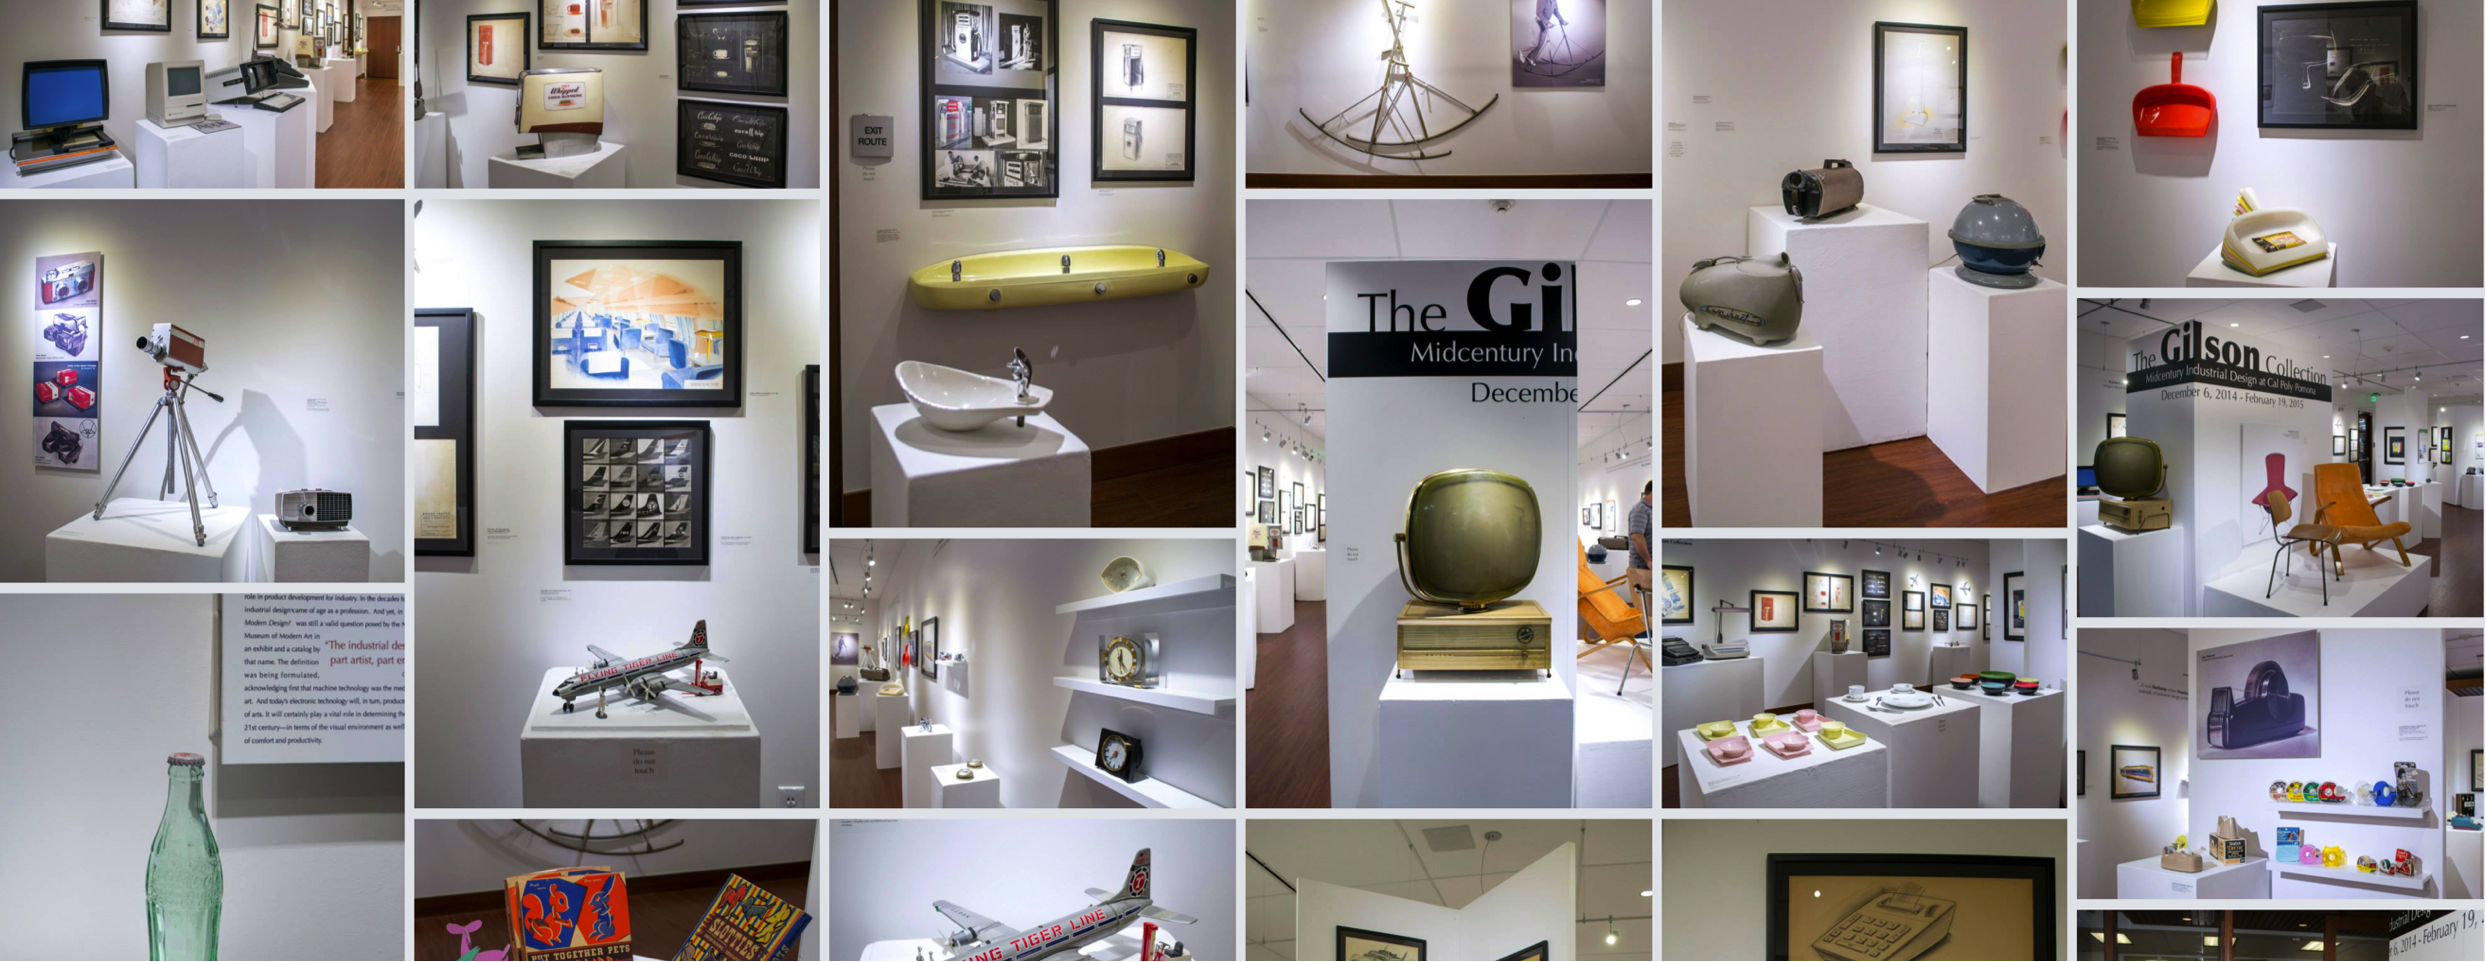 Photomontage of Channing Gilson Collection exhibition views of midcentury industrial design objects and designs